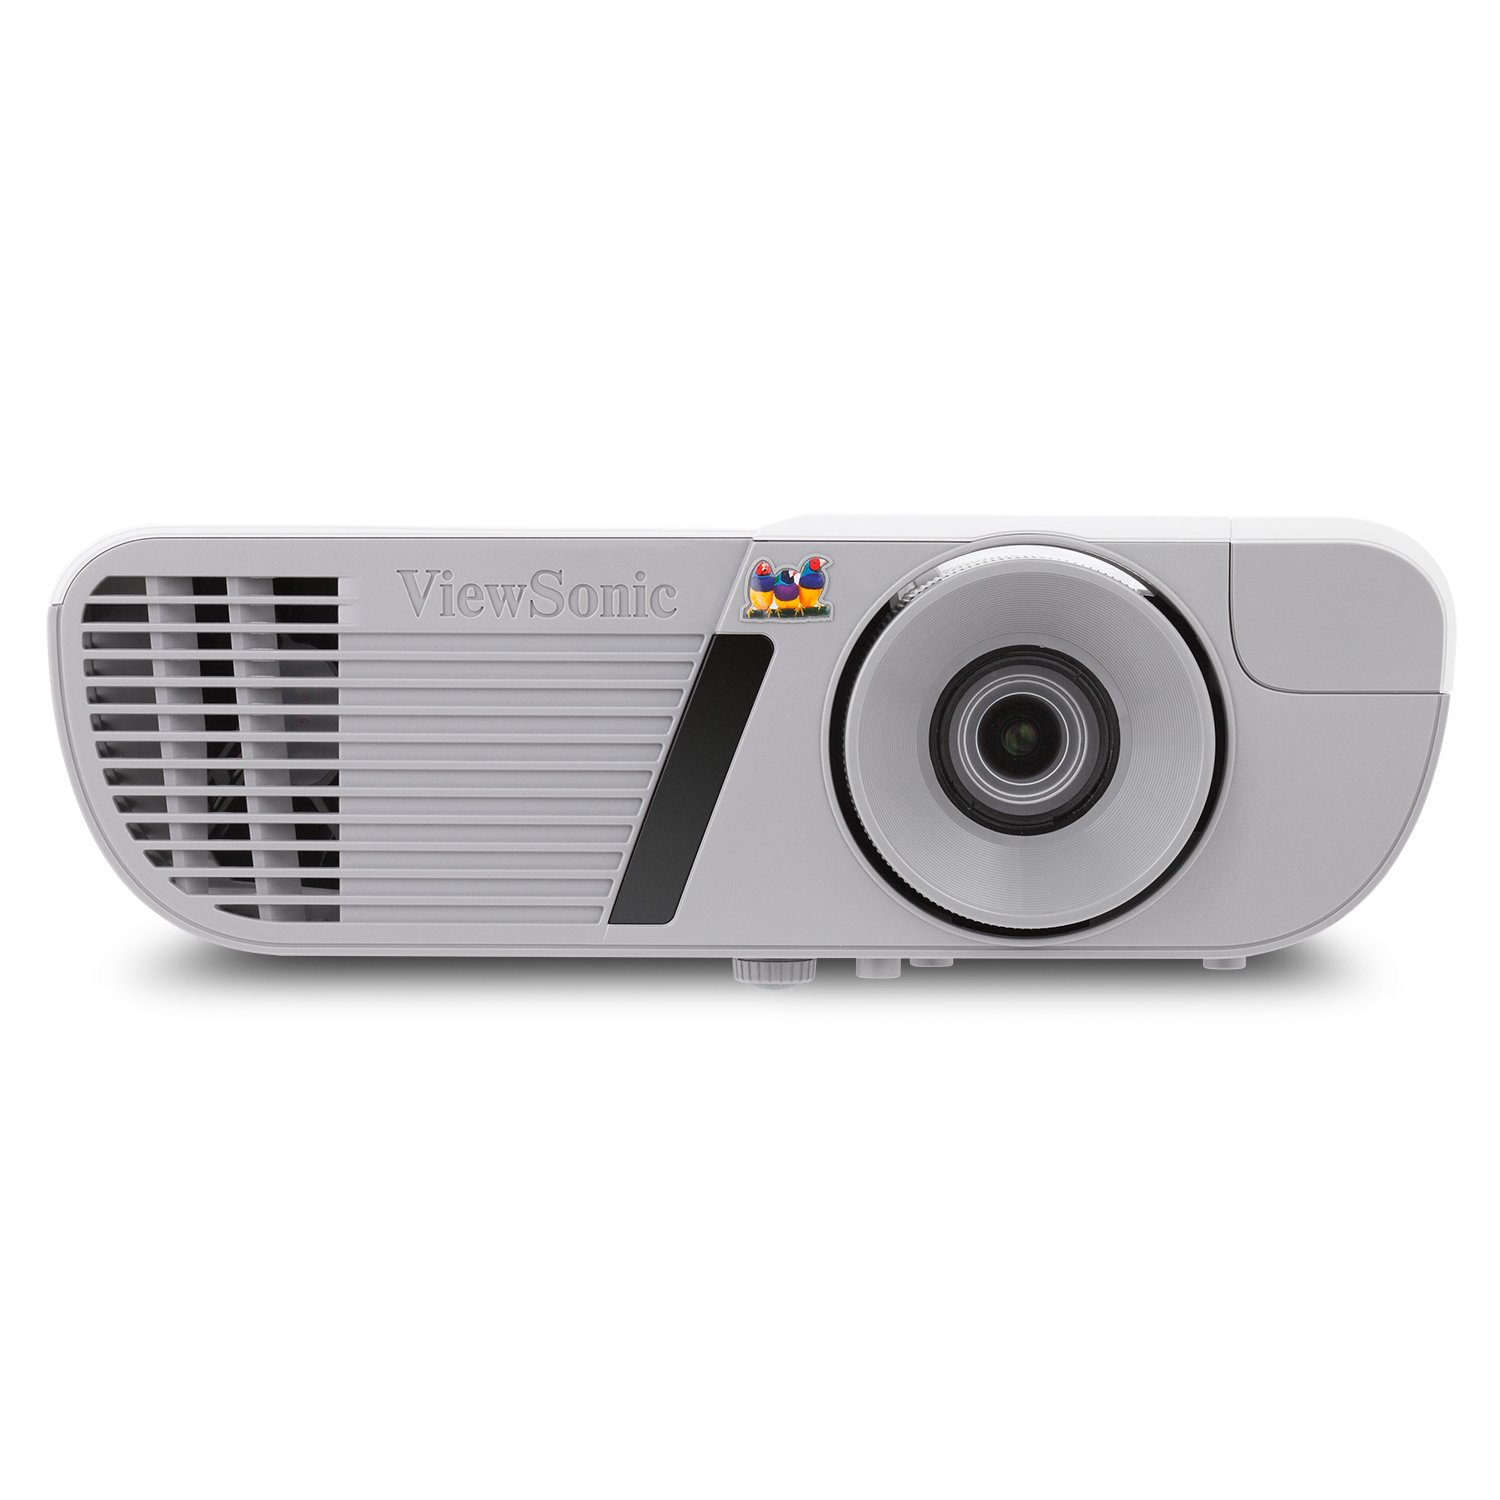 ViewSonic PJD7828HDL Full HD 1080p Home Theater Projector - $449.99 - $228 off or 34%